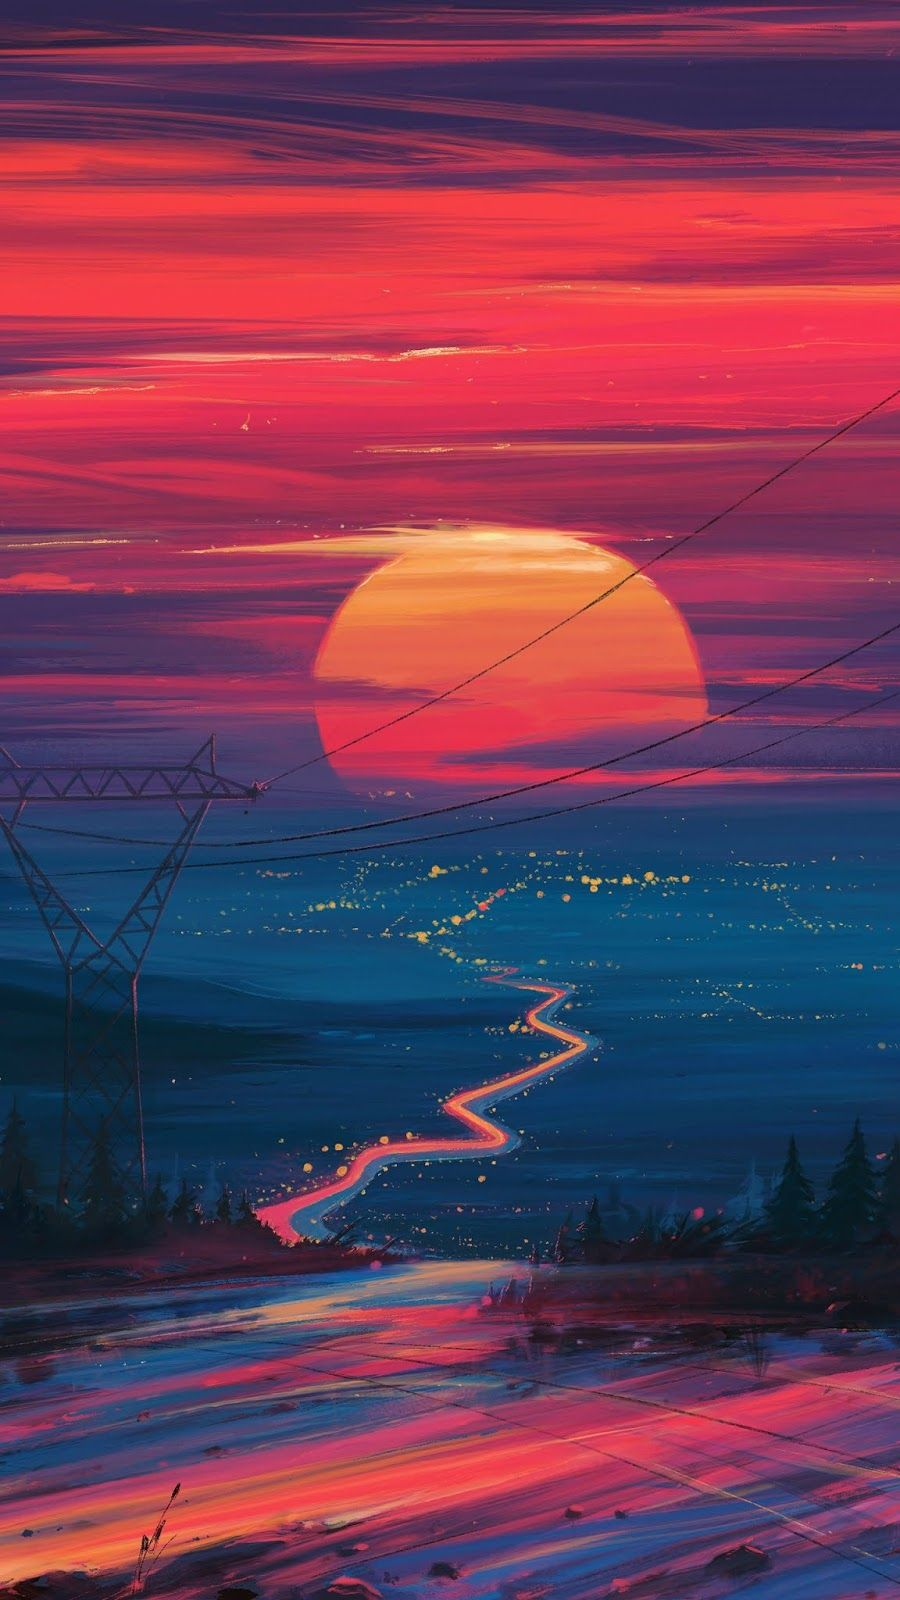 Sunset Wallpaper Iphone Android Background Followme Sunset Wallpaper Aesthetic Iphone Wallpaper Trippy Wallpaper